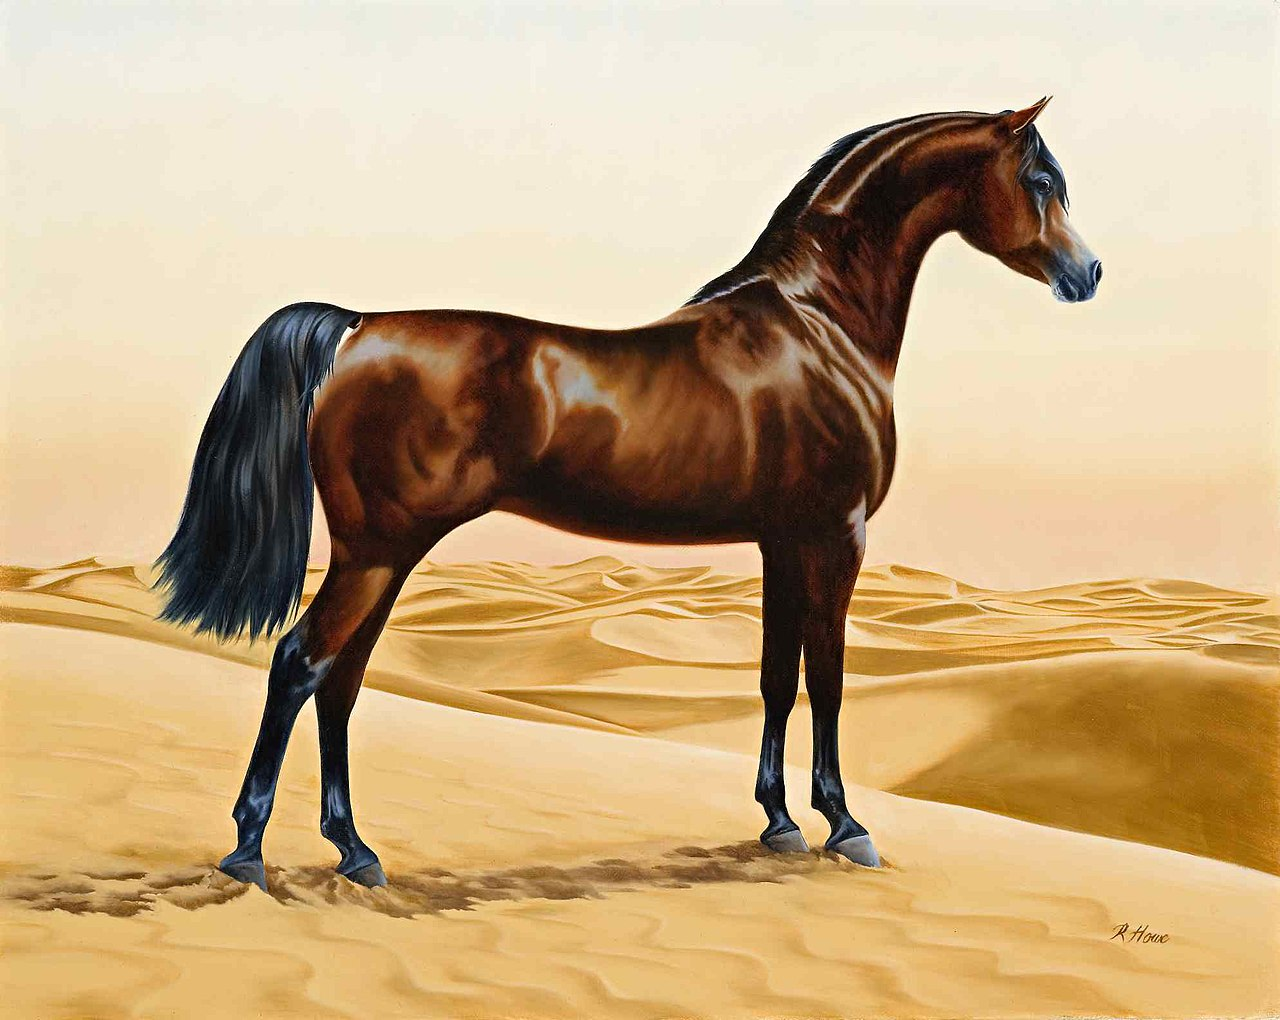 File:Arab horse painting animals arabian ainting by ...